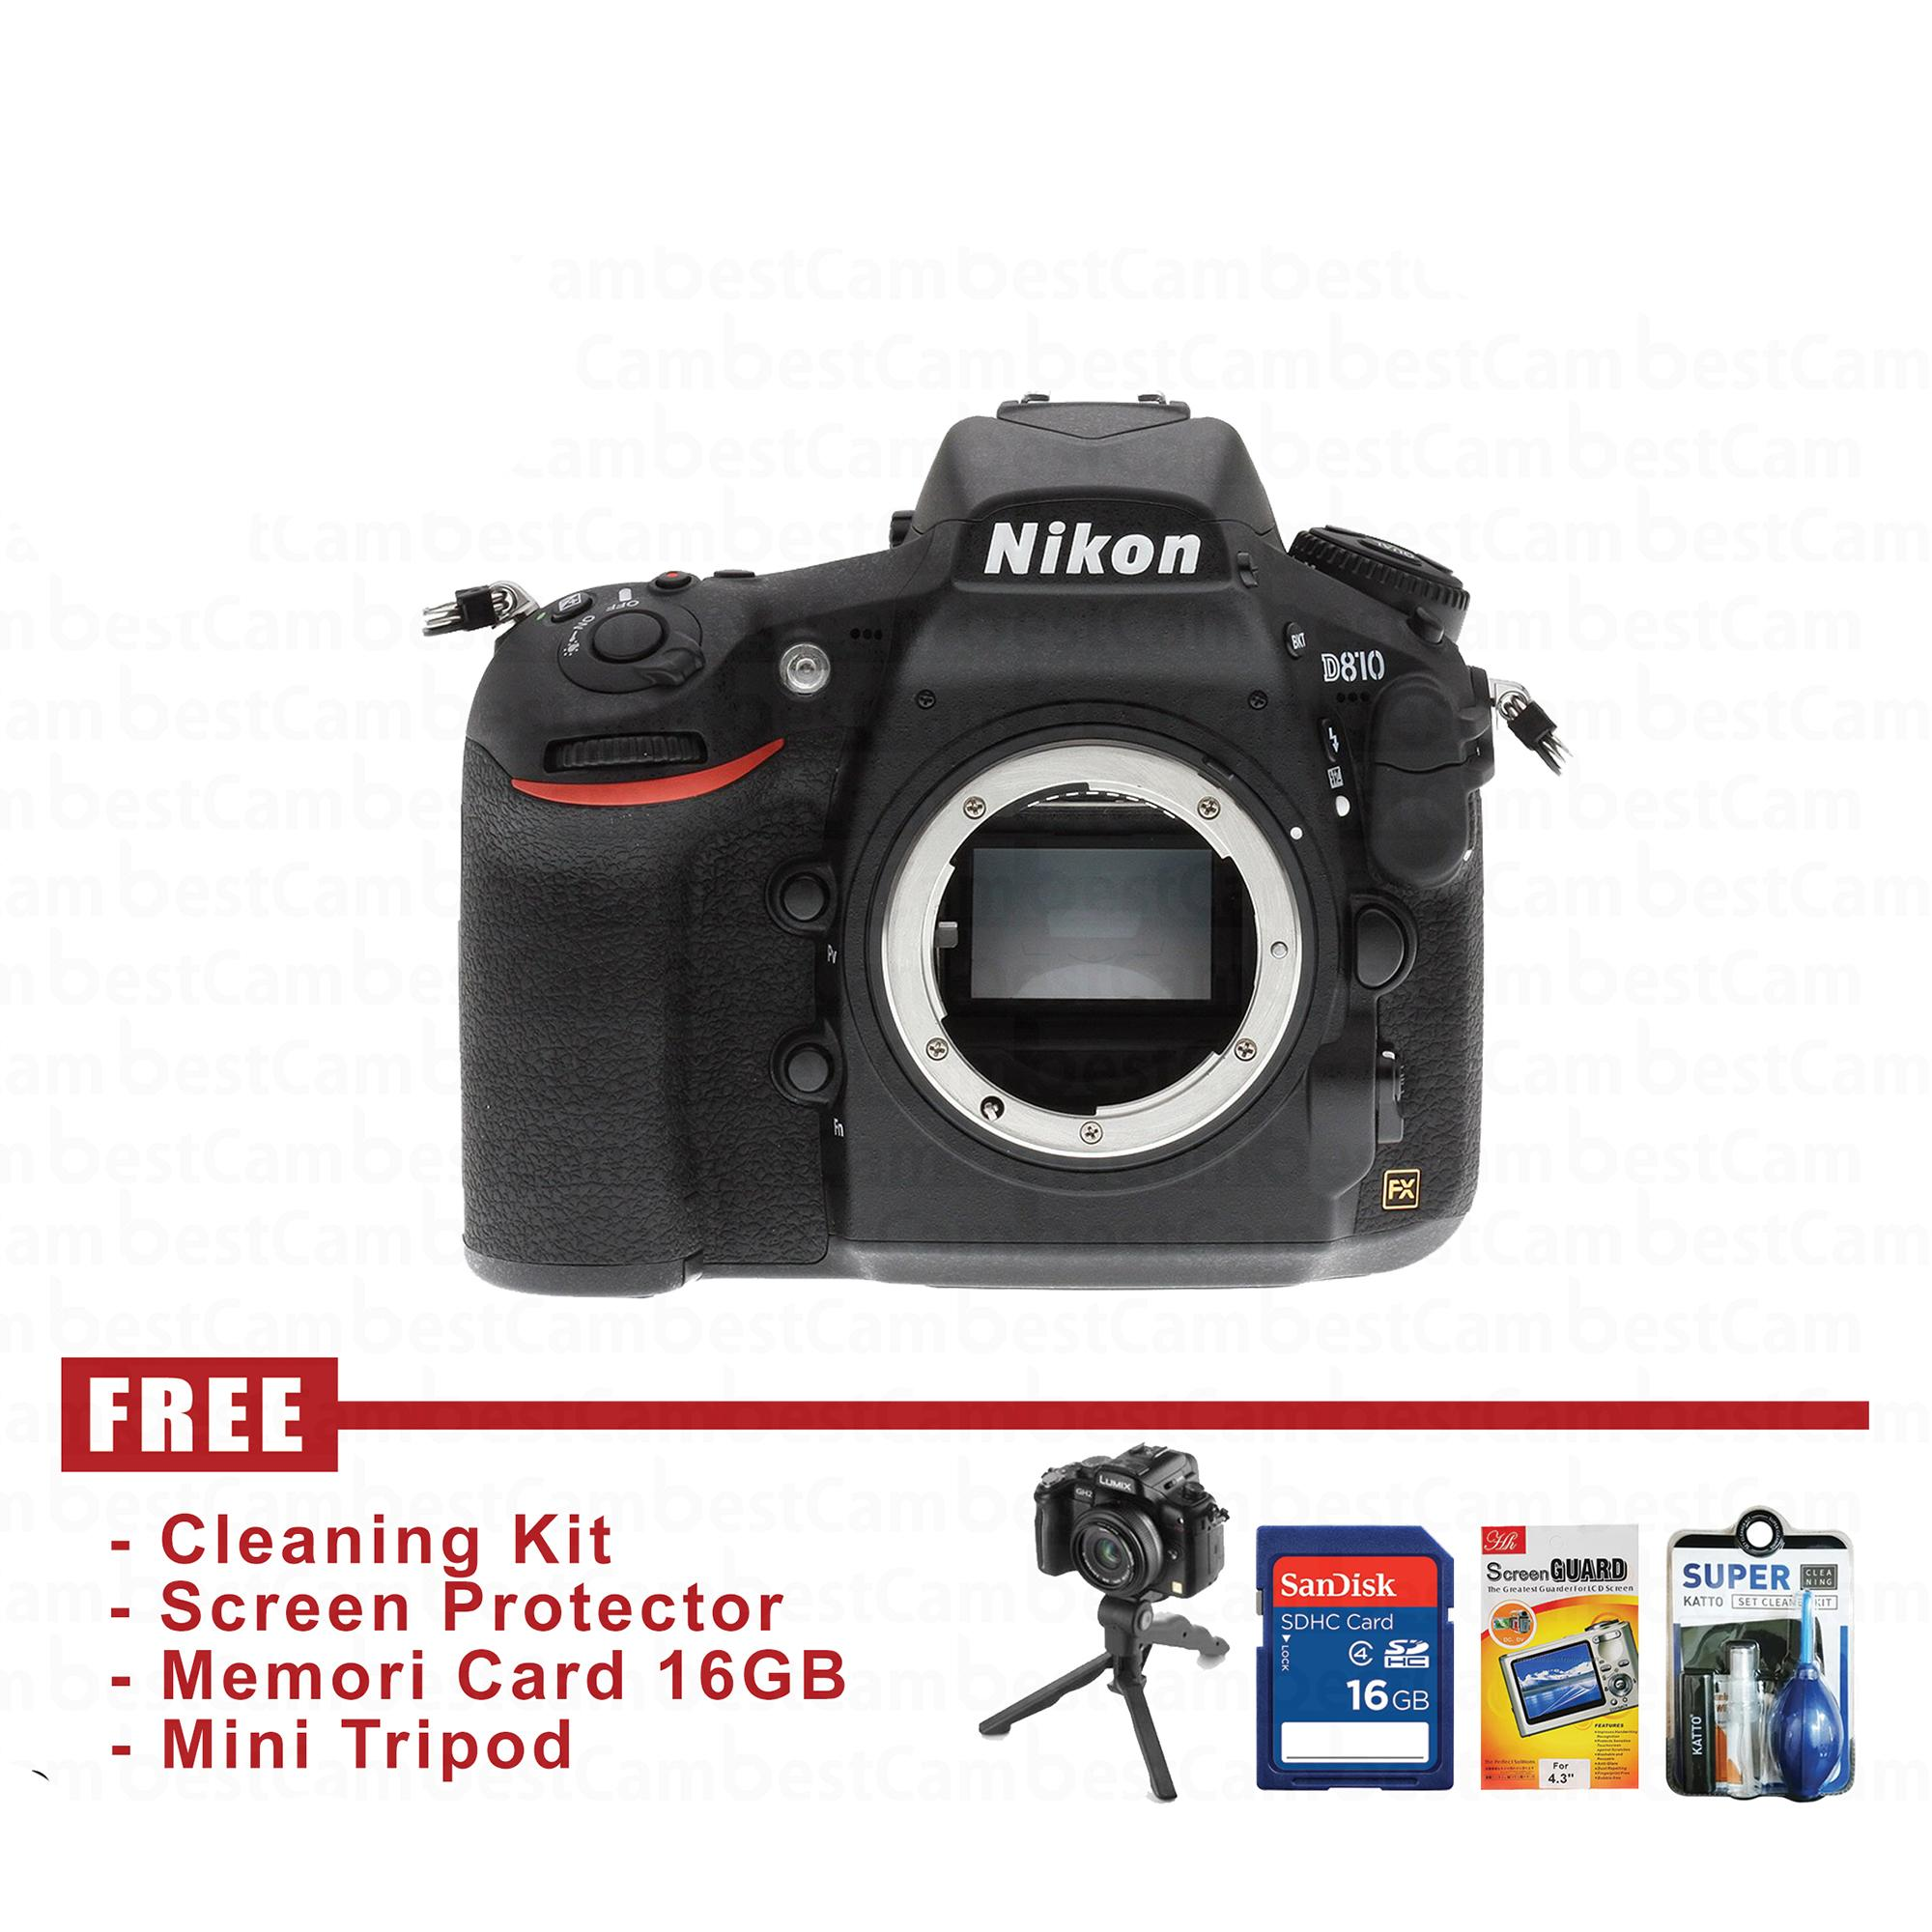 Nikon D810 Body Only - Hitam - FREE Accessories